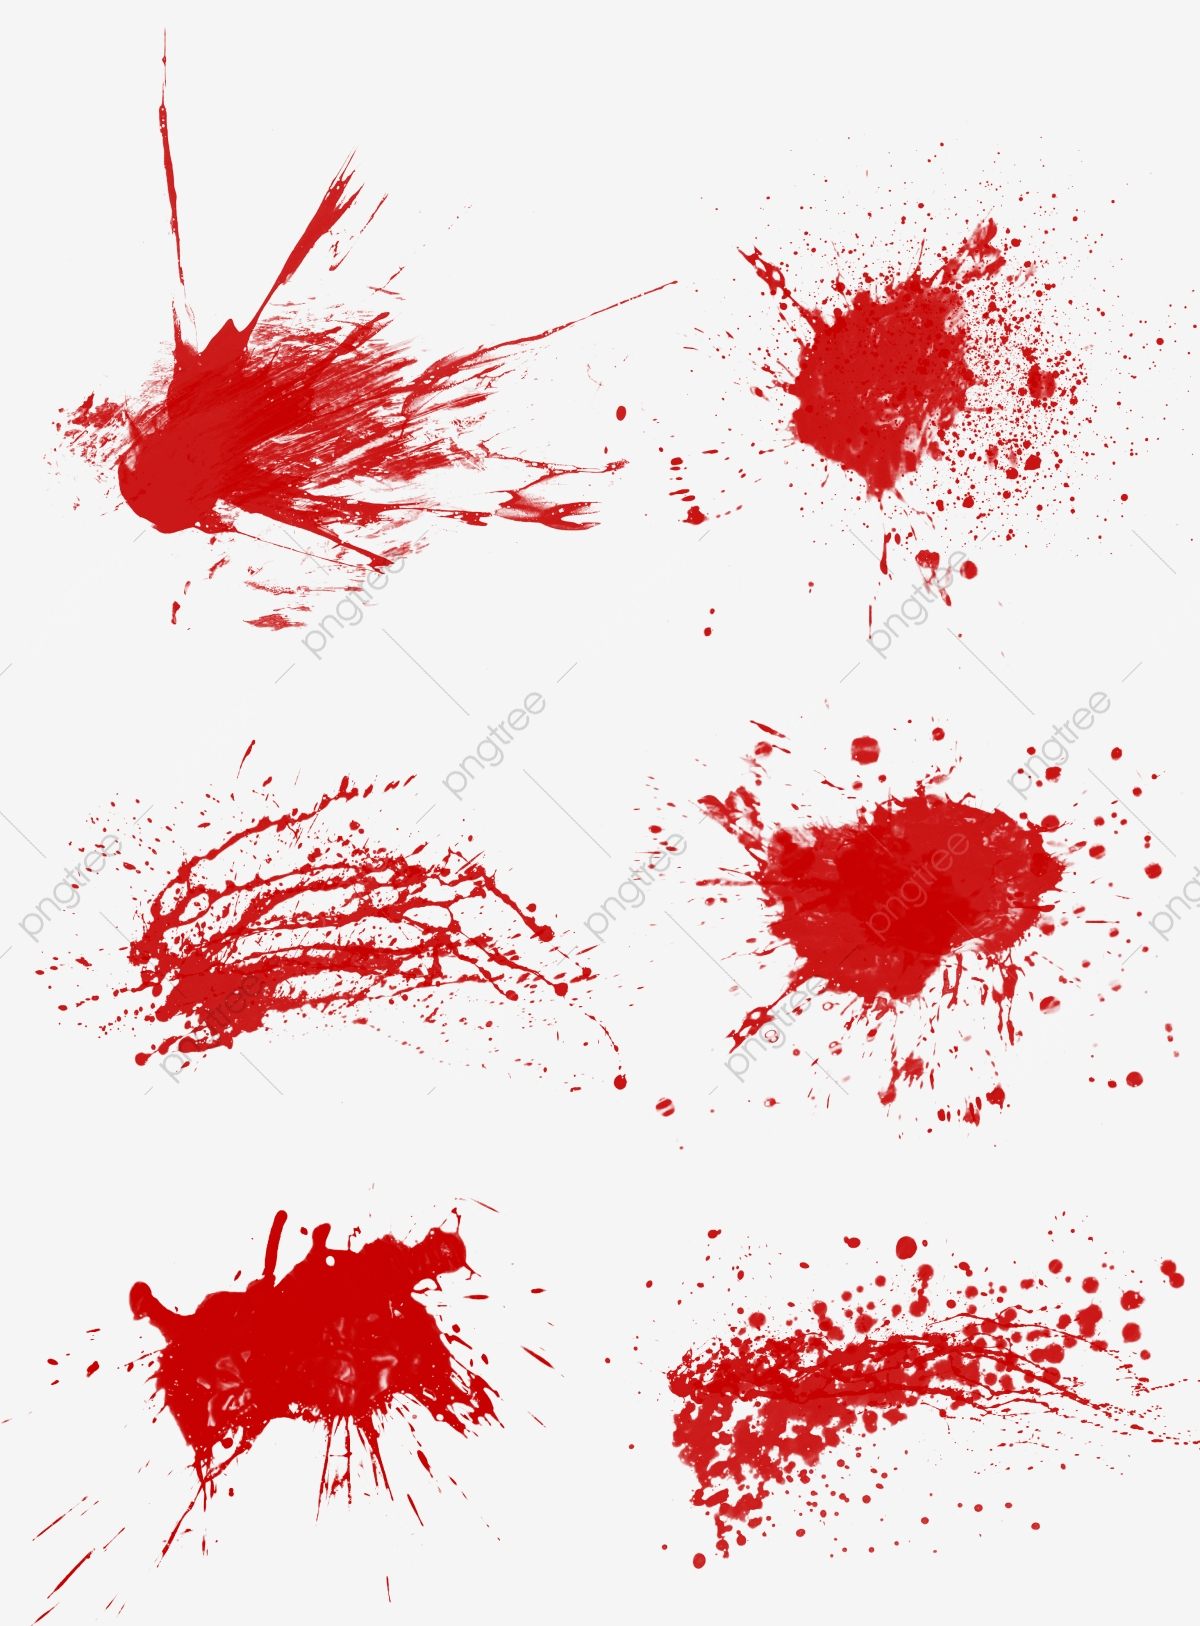 Blood Png Vector Psd And Clipart With Transparent Background For Free Download Pngtree Download it free and share your own artwork here. https pngtree com freepng simple blood splatter material 4024605 html